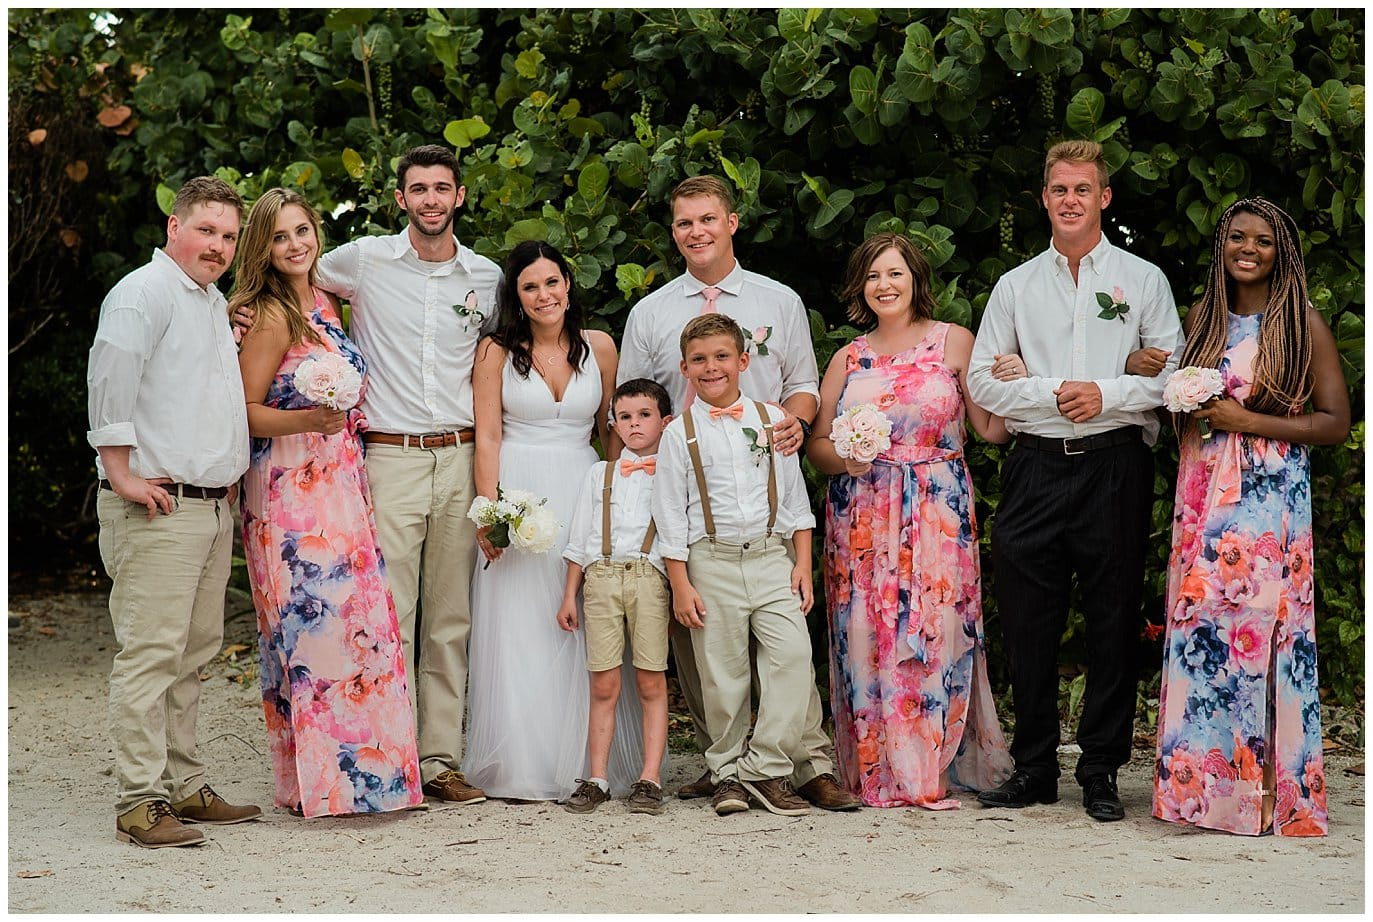 Captiva Island beach wedding bridal party photo